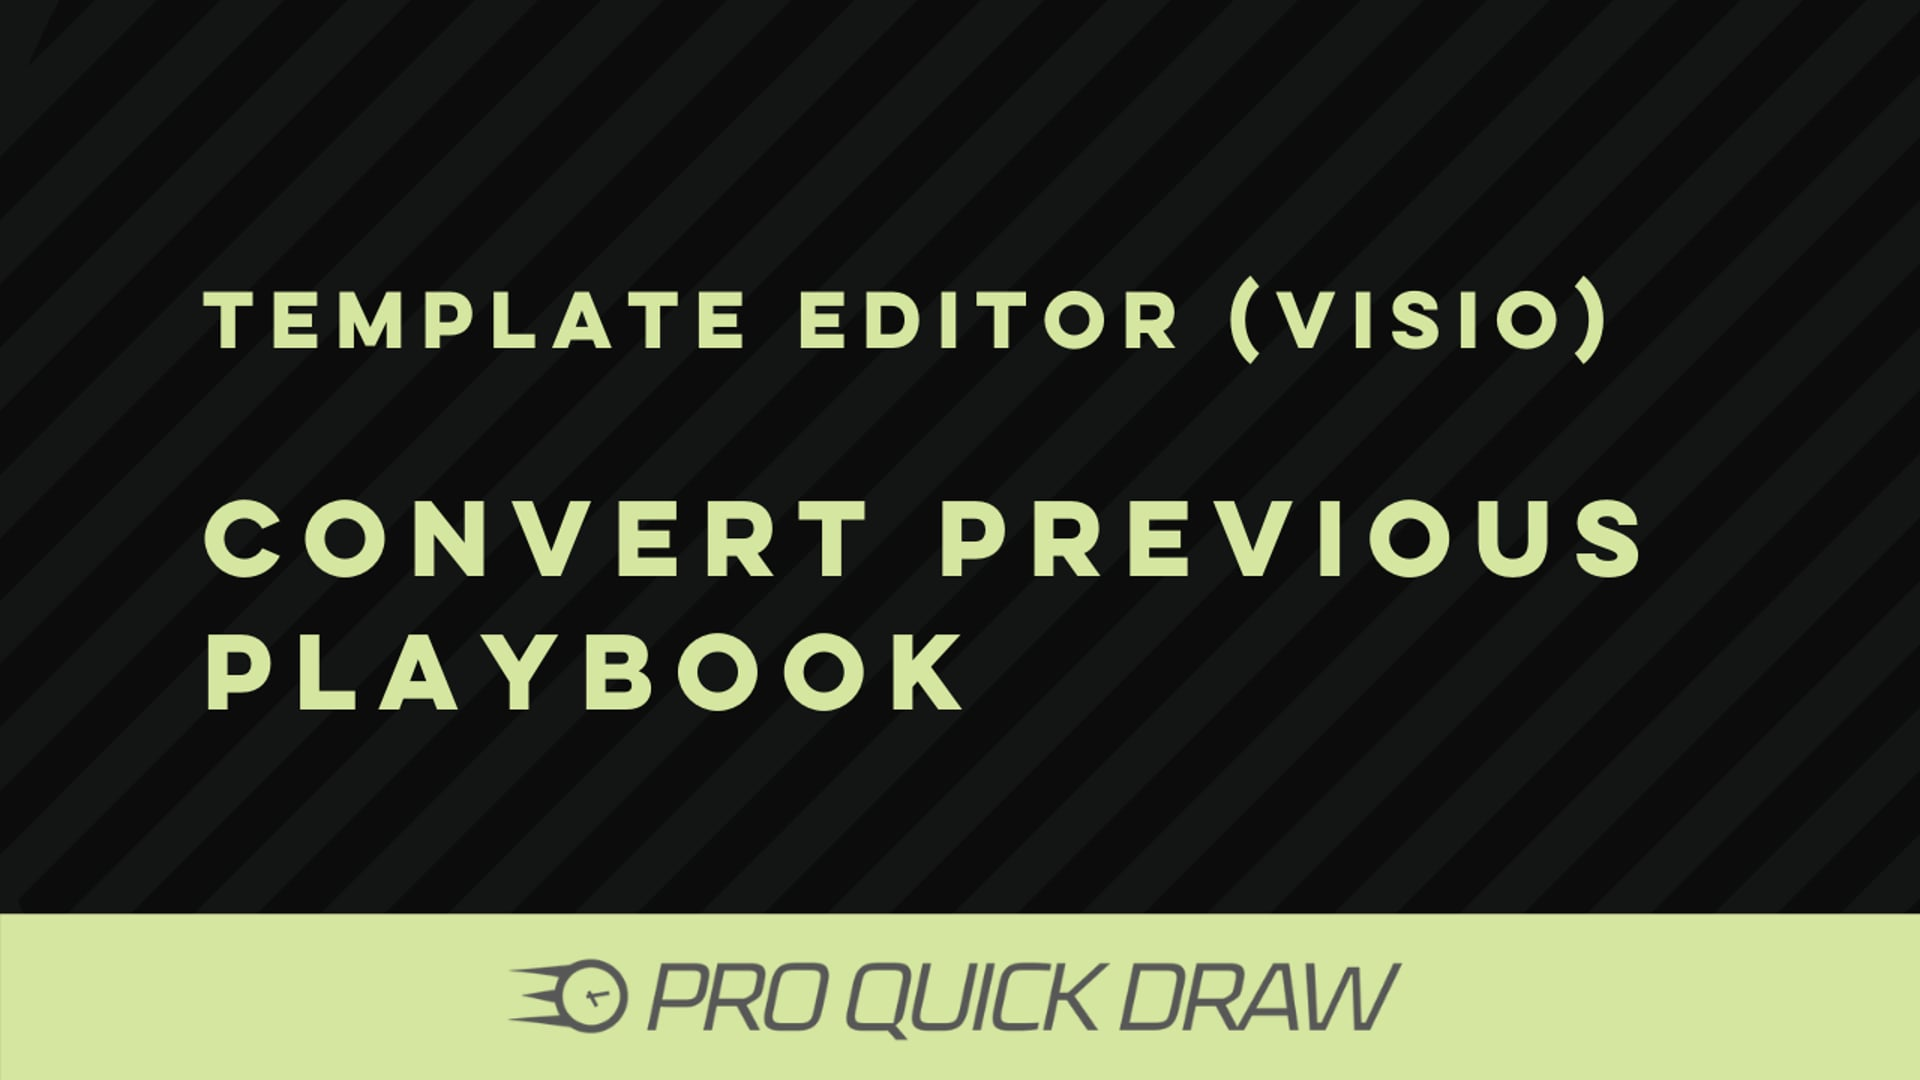 Template Editor (Visio): Convert Your Previous Playbook